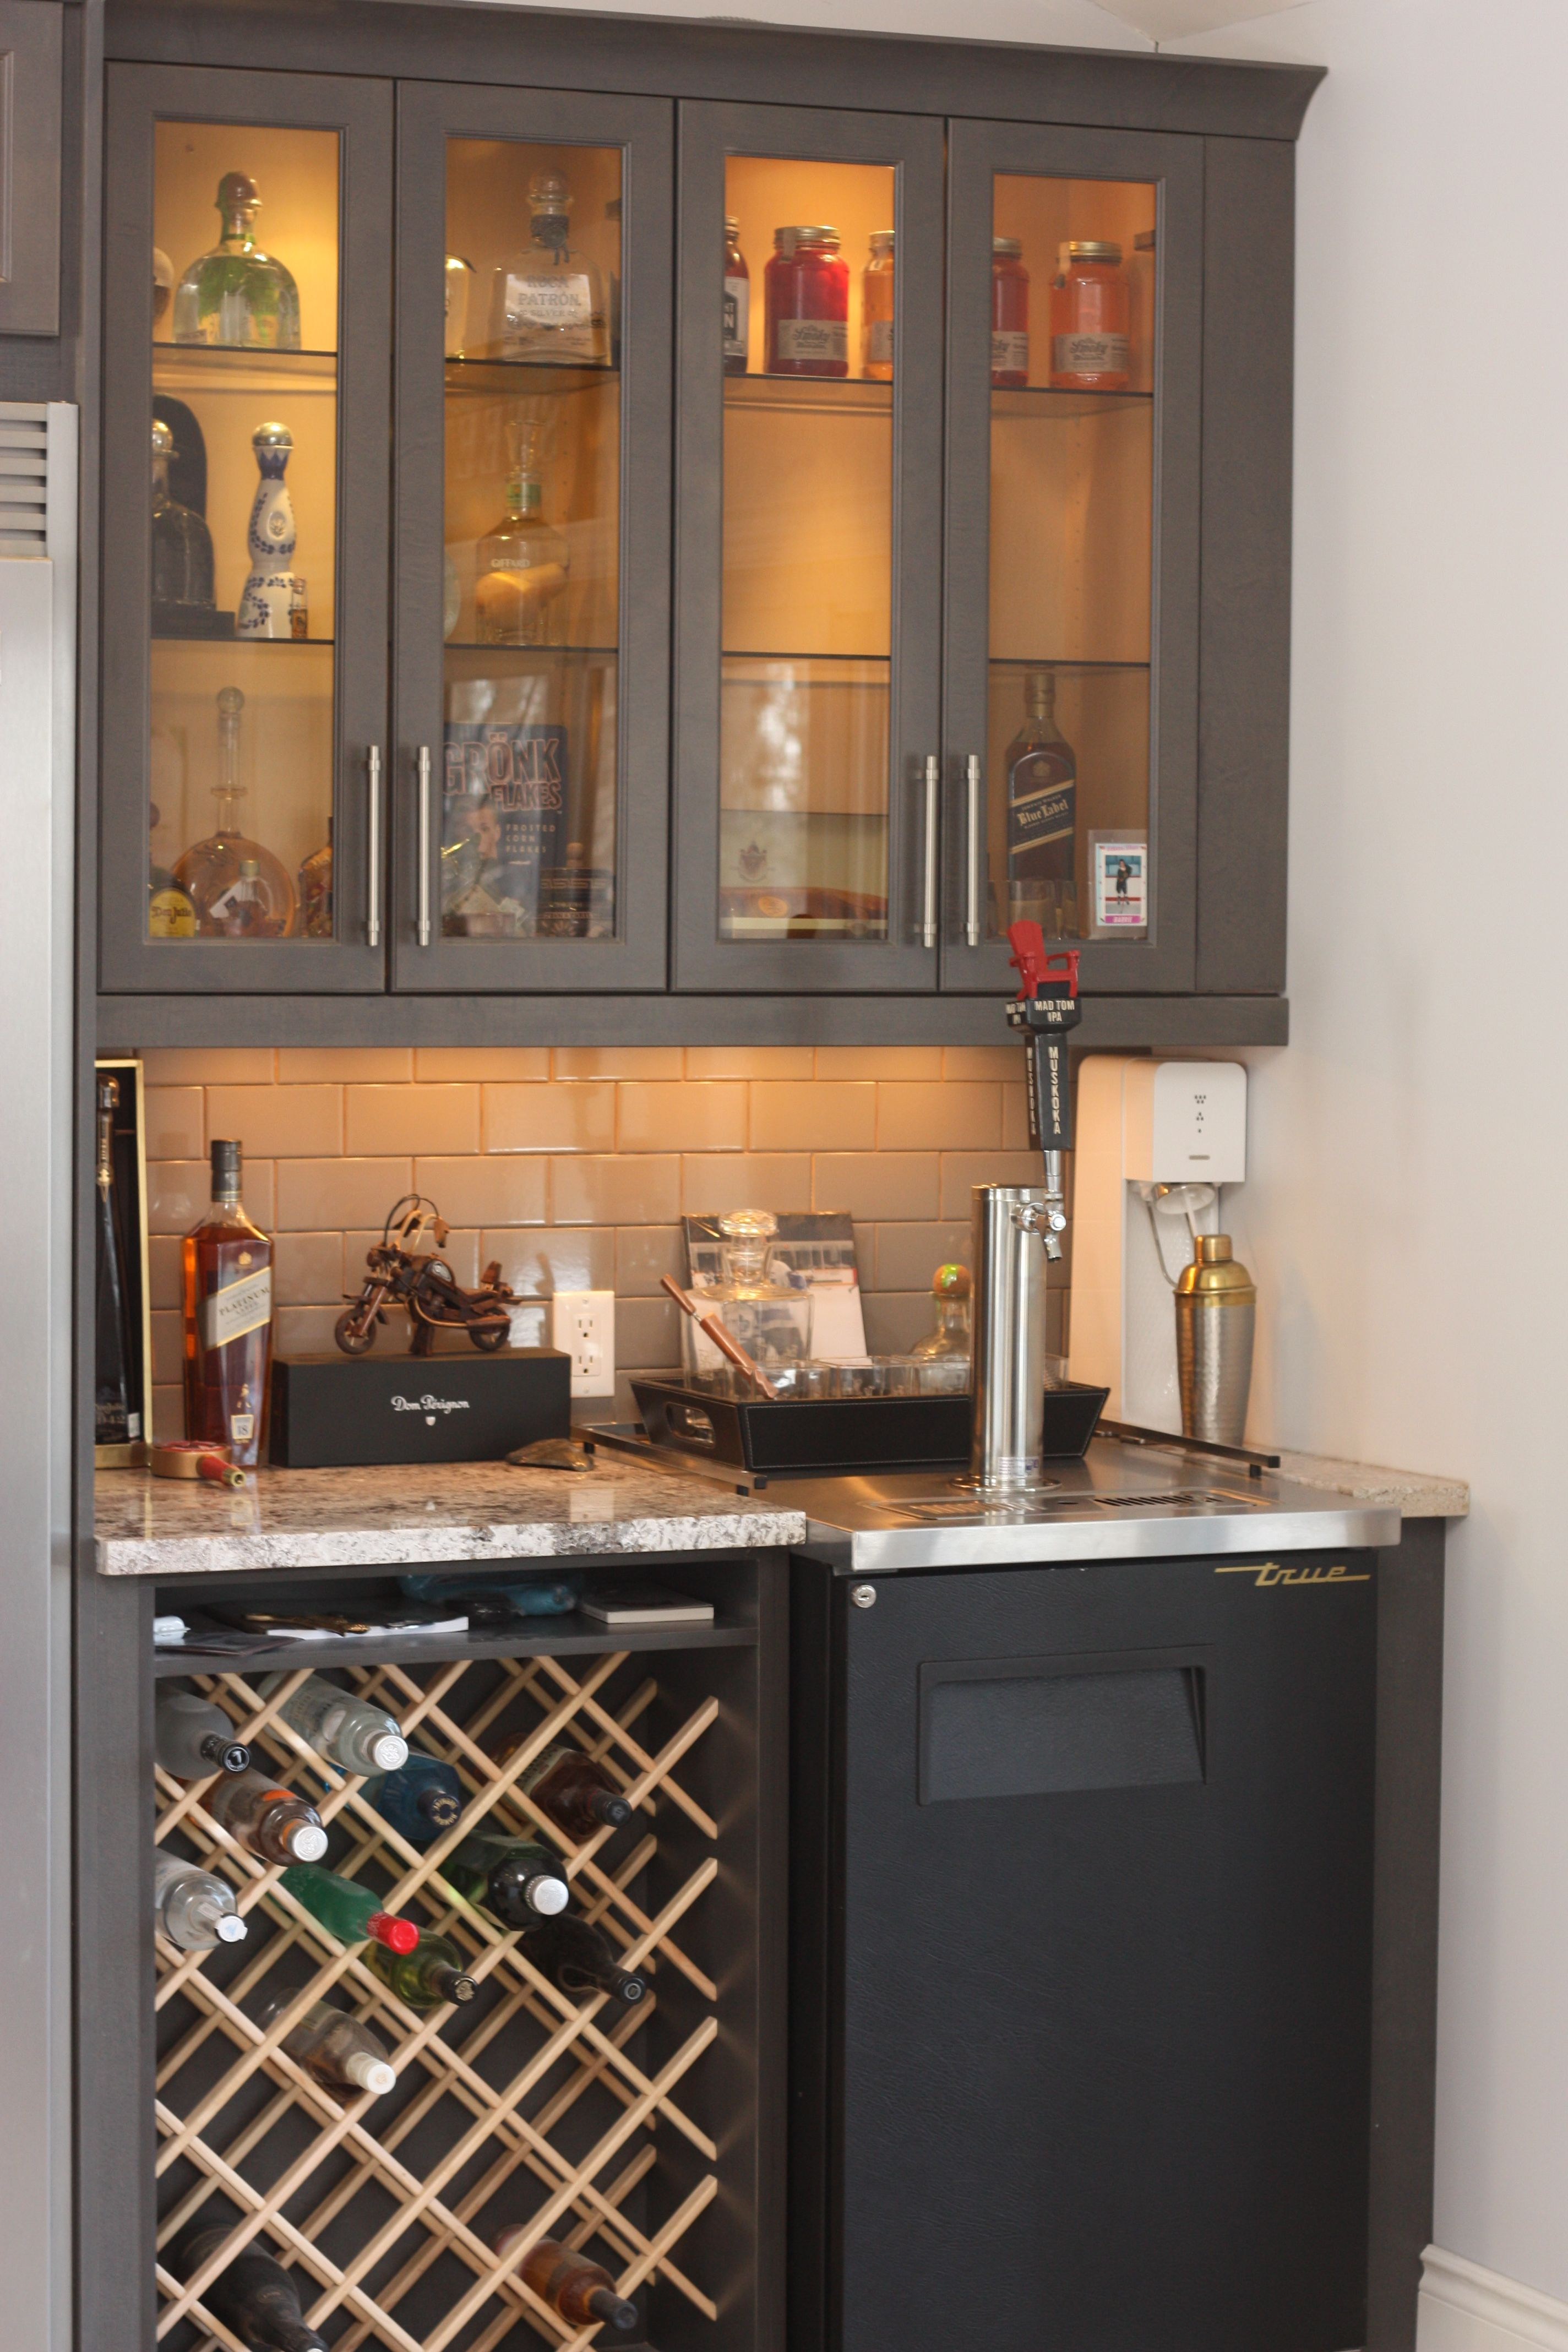 Custom wine rack in bar area with Kegerator and glass door liquor cabinets  Camping Kitchen in